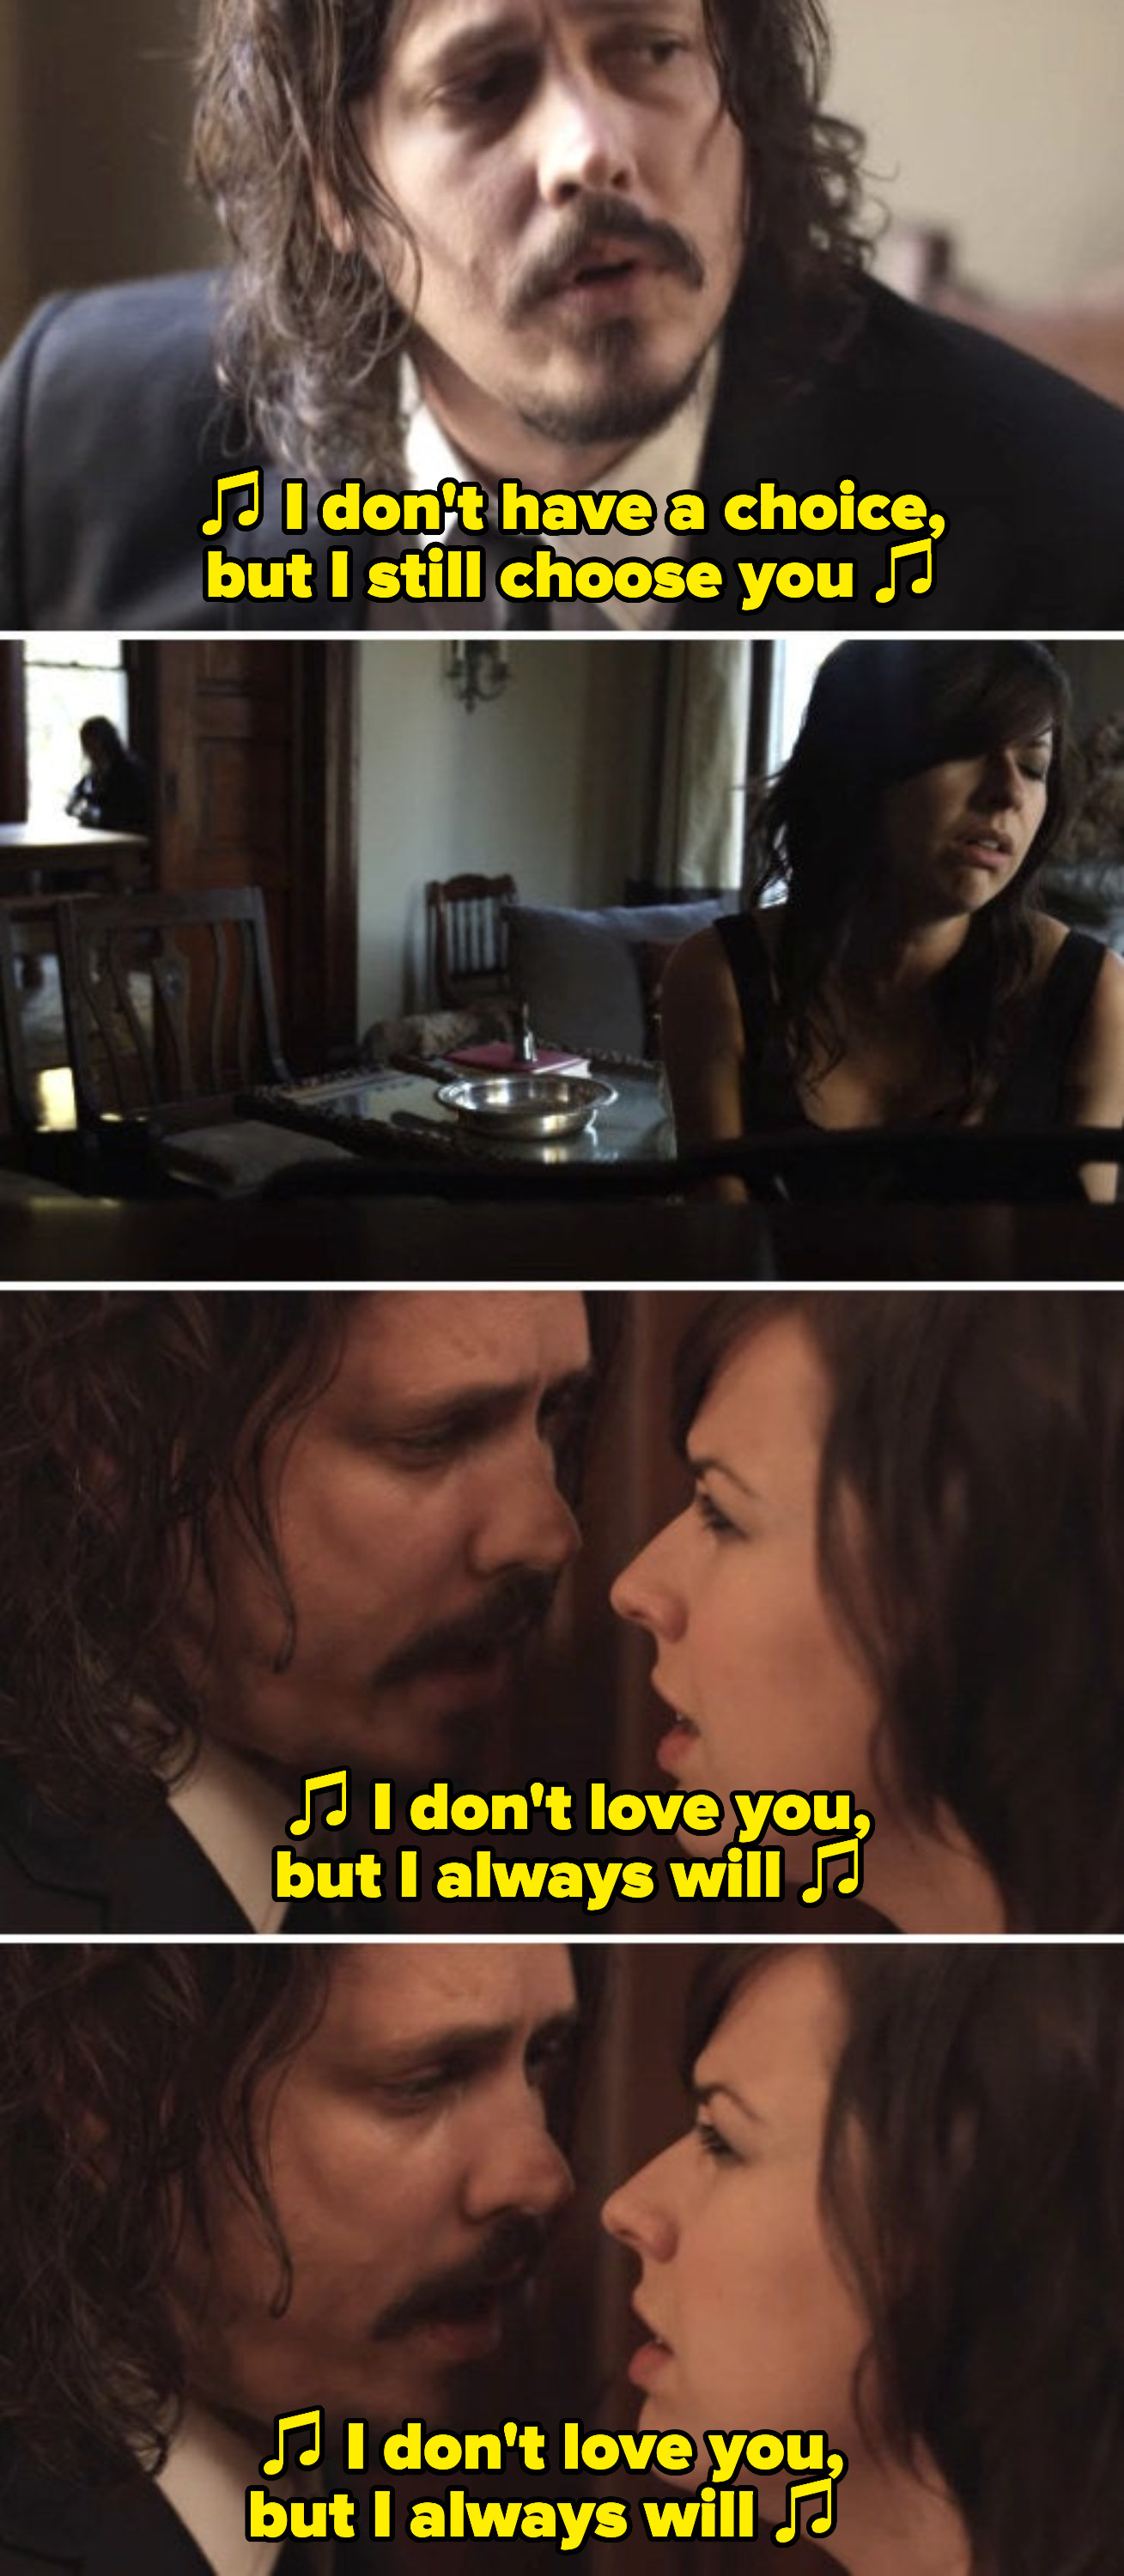 """The Civil Wars in their """"Poison & Wine"""" music video, singing: """"I don't love you, but I always will"""""""